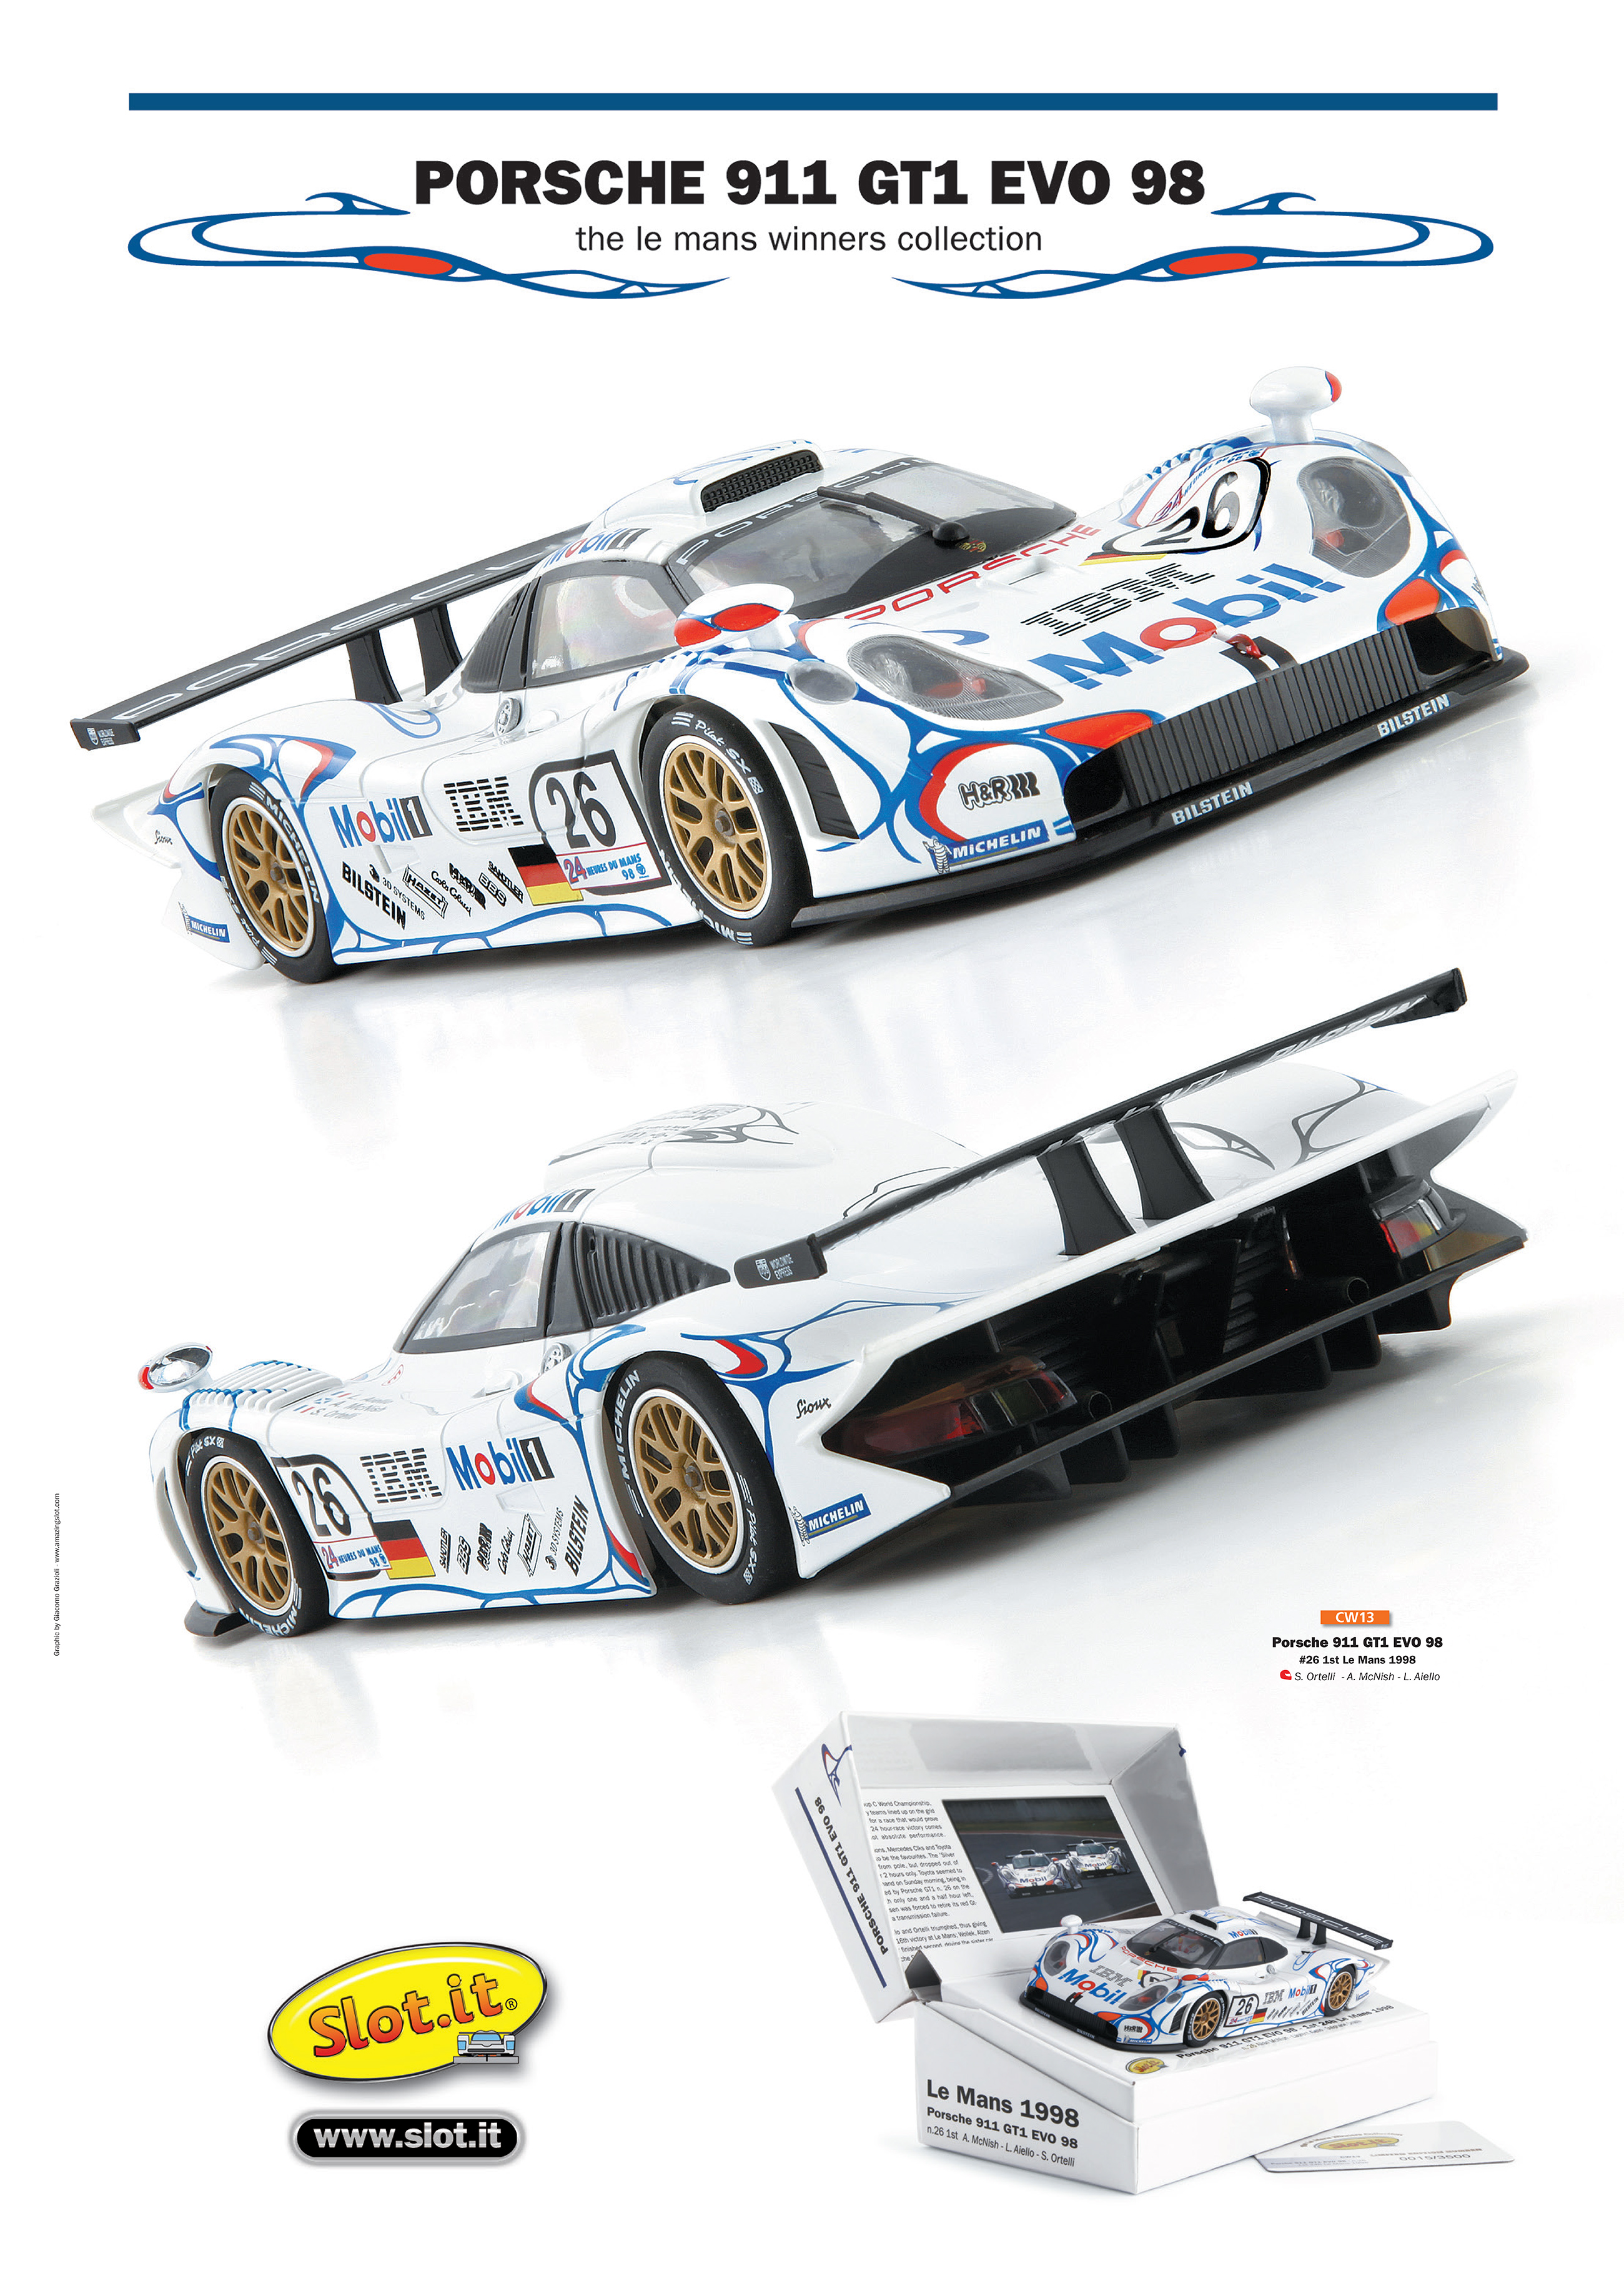 fascinating porsche 911 gt1 evo 98 slot it noisiestpassenger. Black Bedroom Furniture Sets. Home Design Ideas